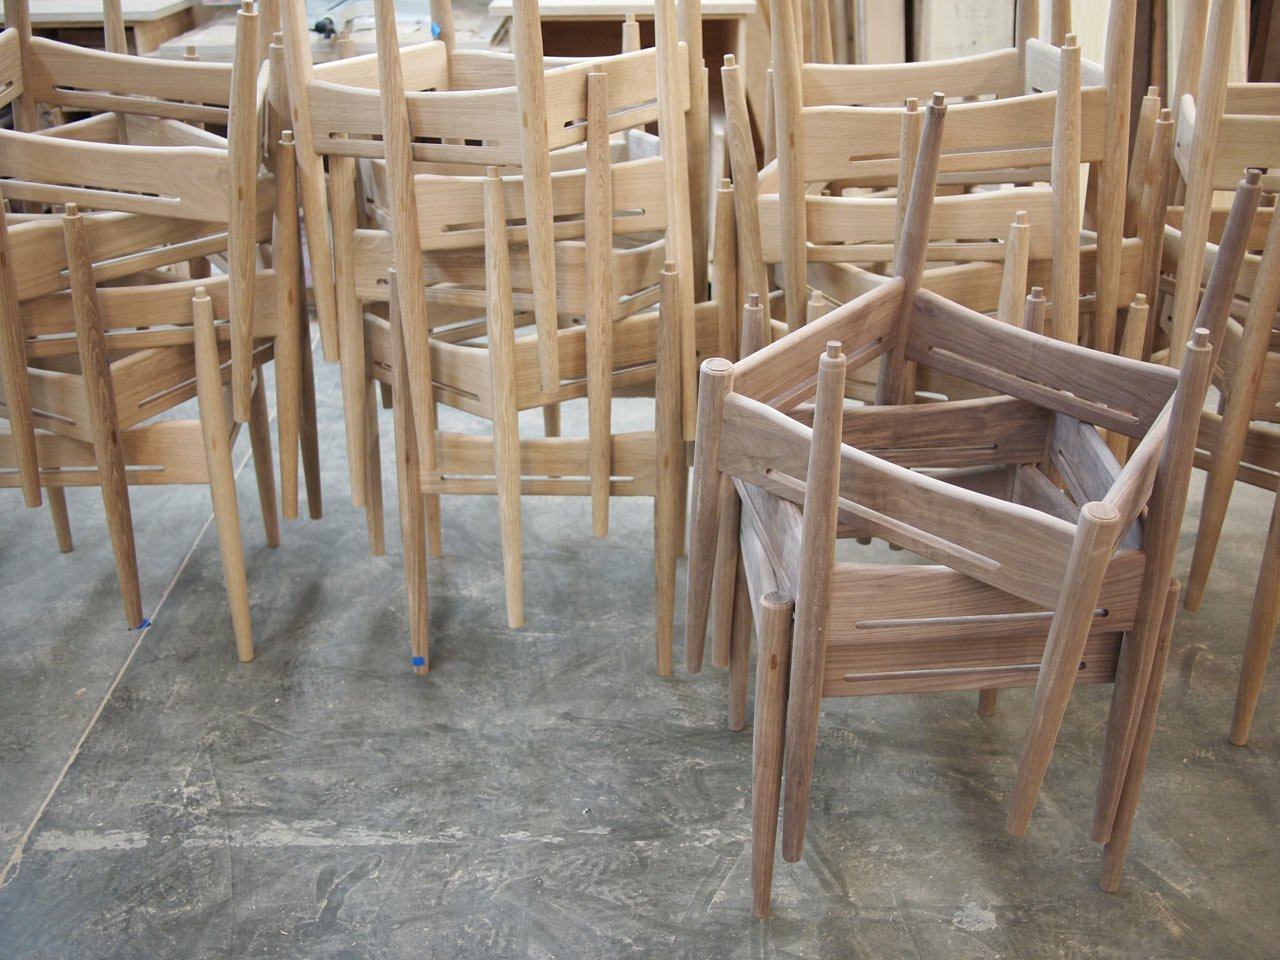 Photo 8 of 15 in How Phloem Studio Makes their Captain's Chair